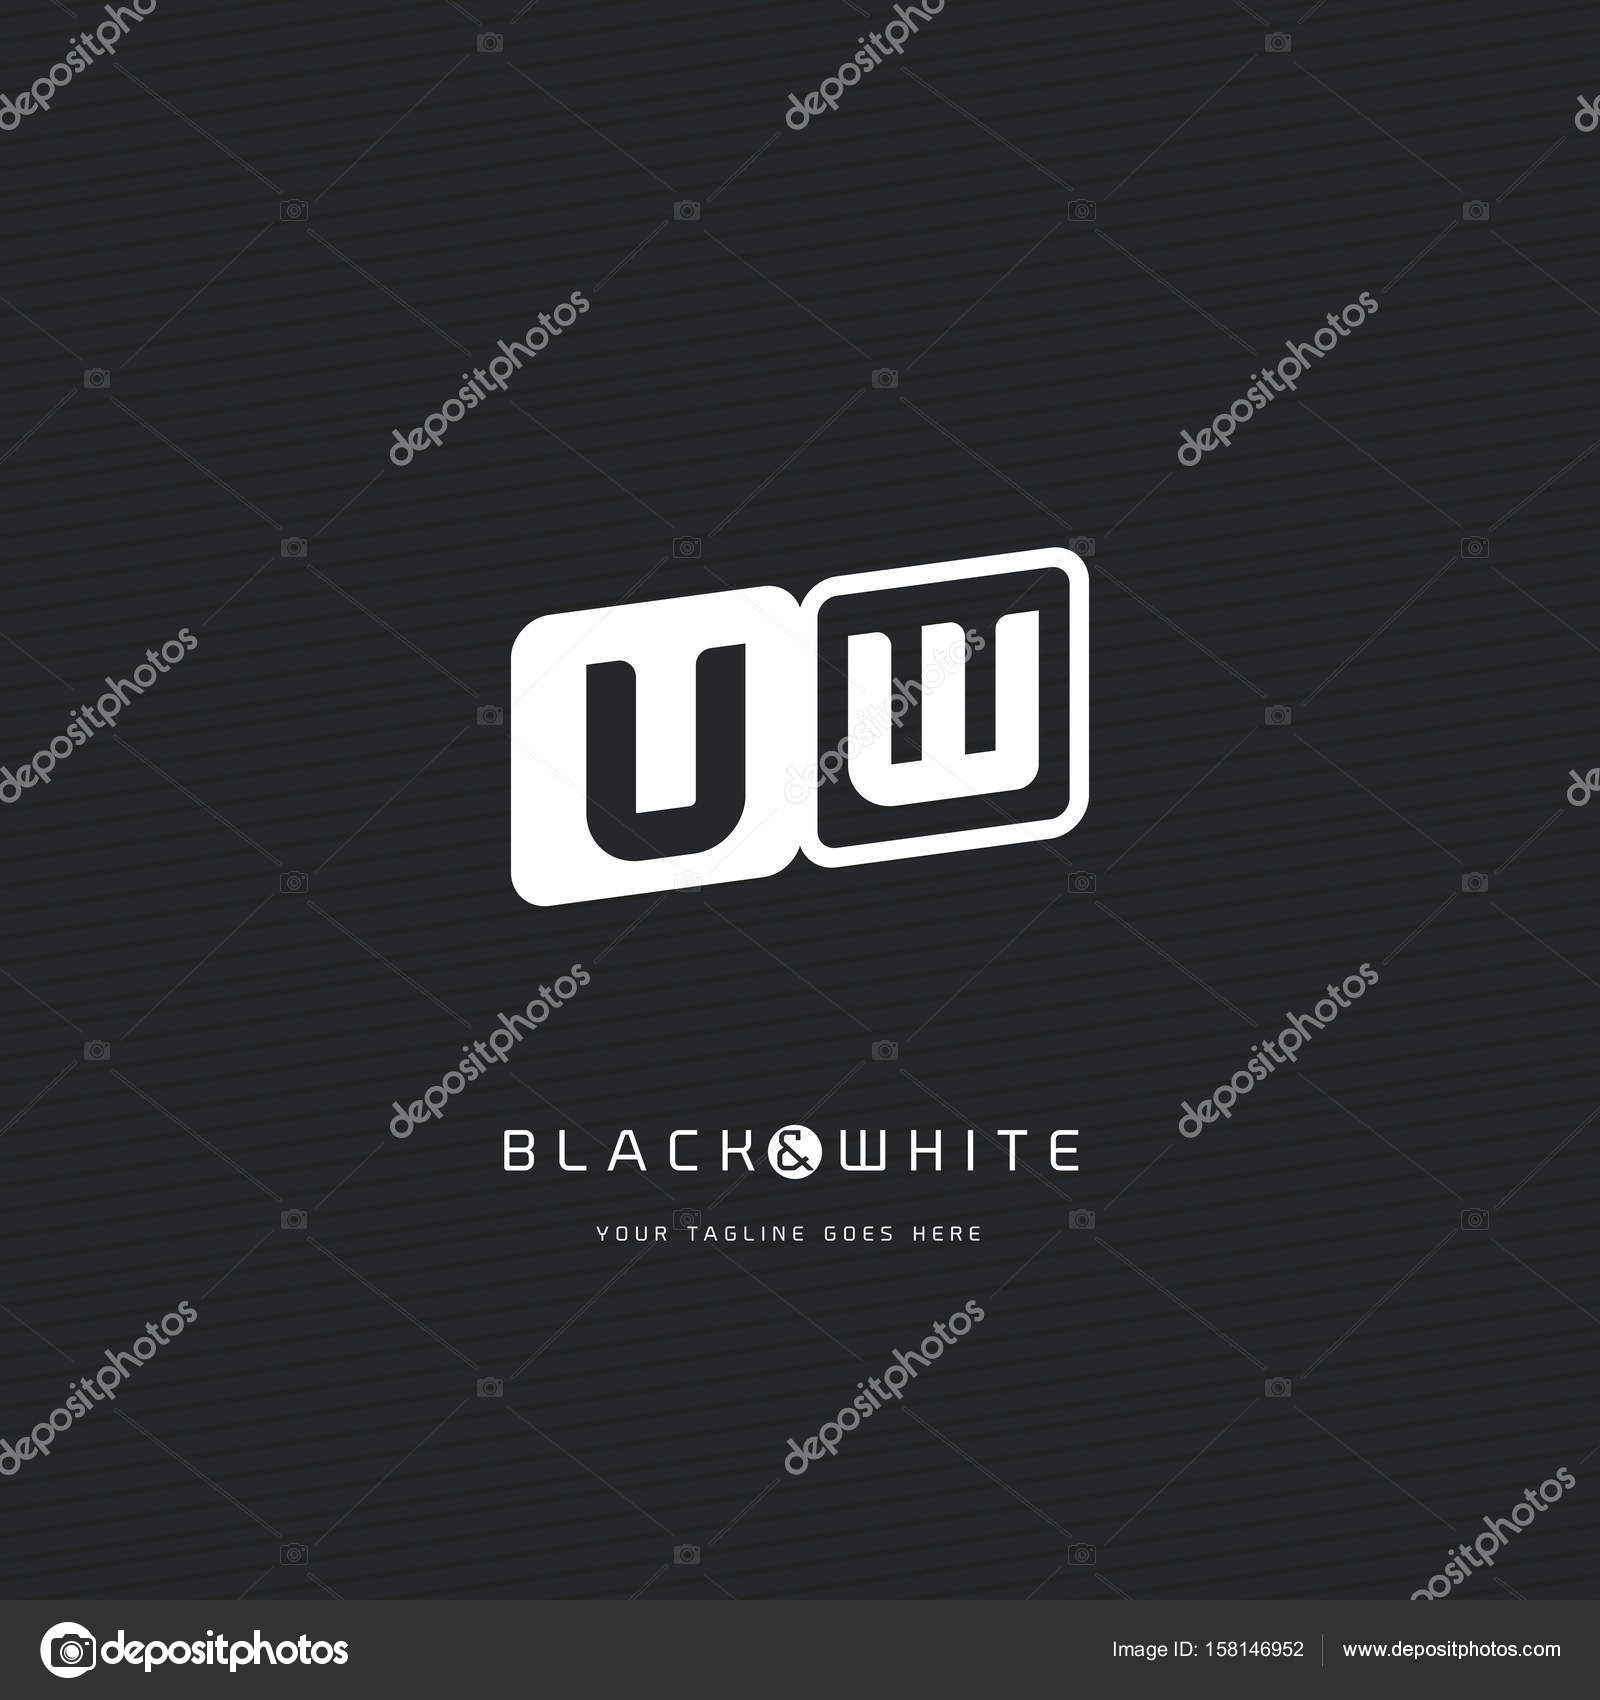 UW Letters Logo Business Card — Stock Vector © brainbistro #158146952